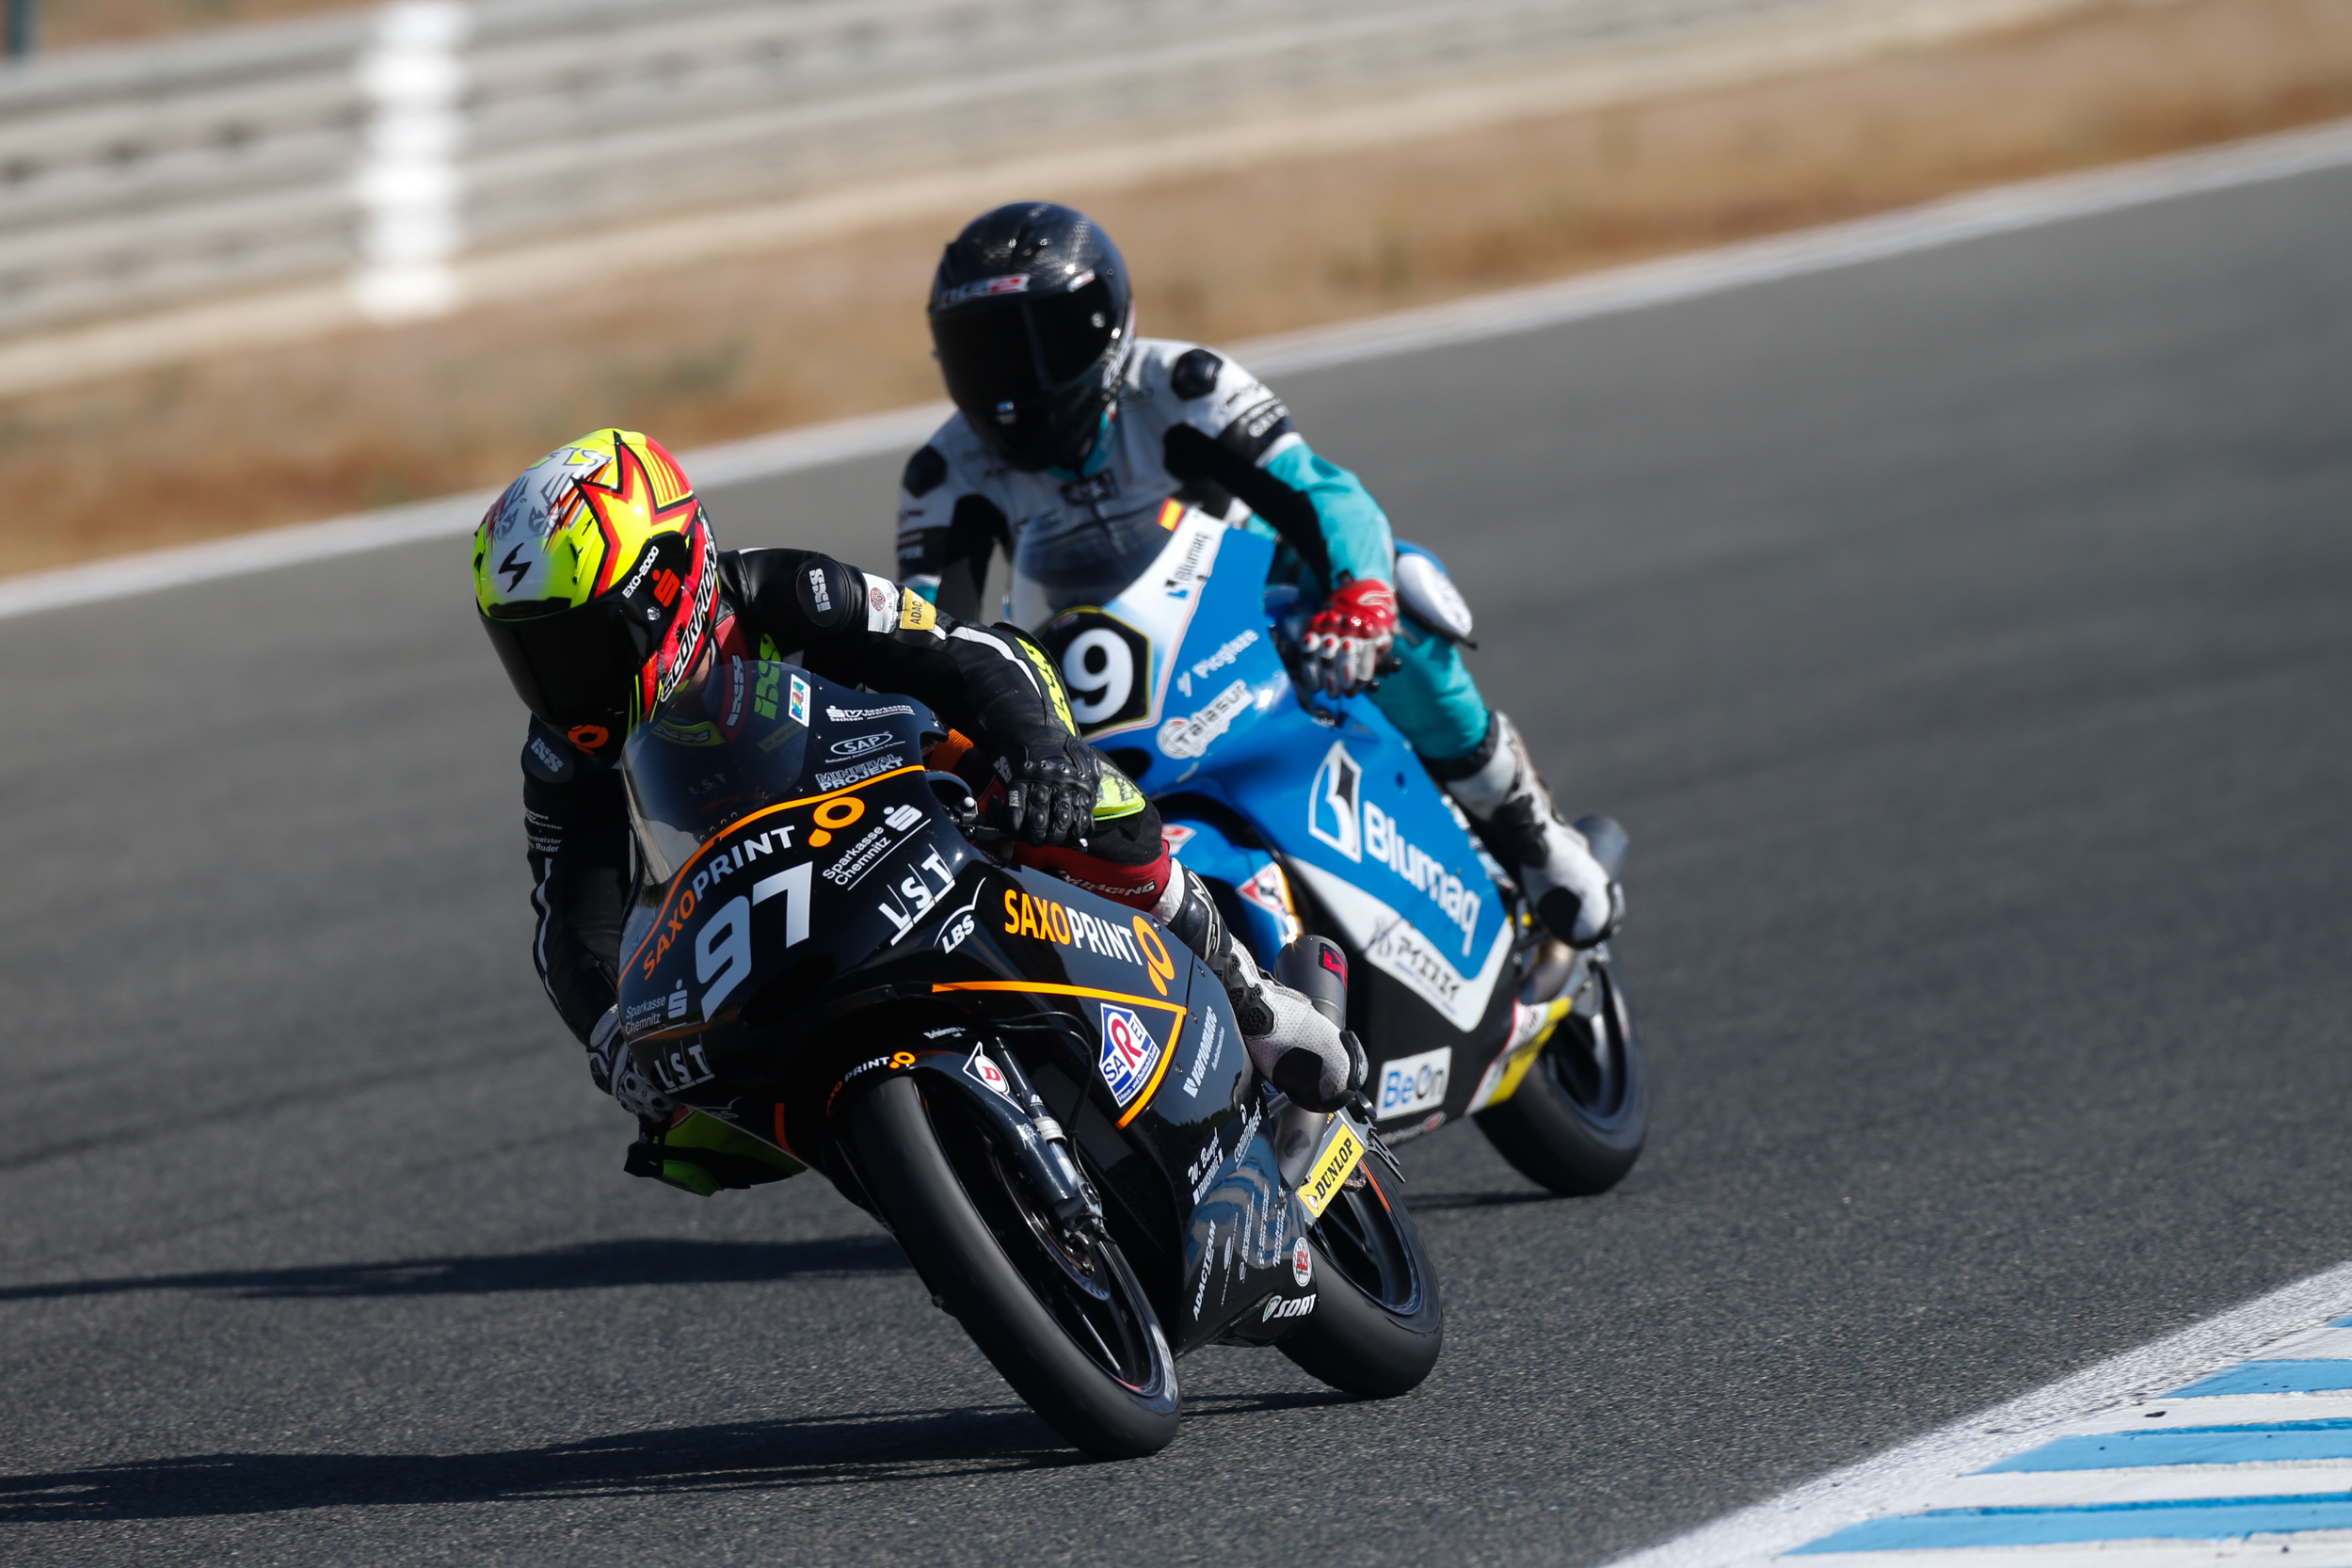 Max Kappler auf KTM bei der Moto3 Junior World Championship 2016 in Jerez de la Frontera